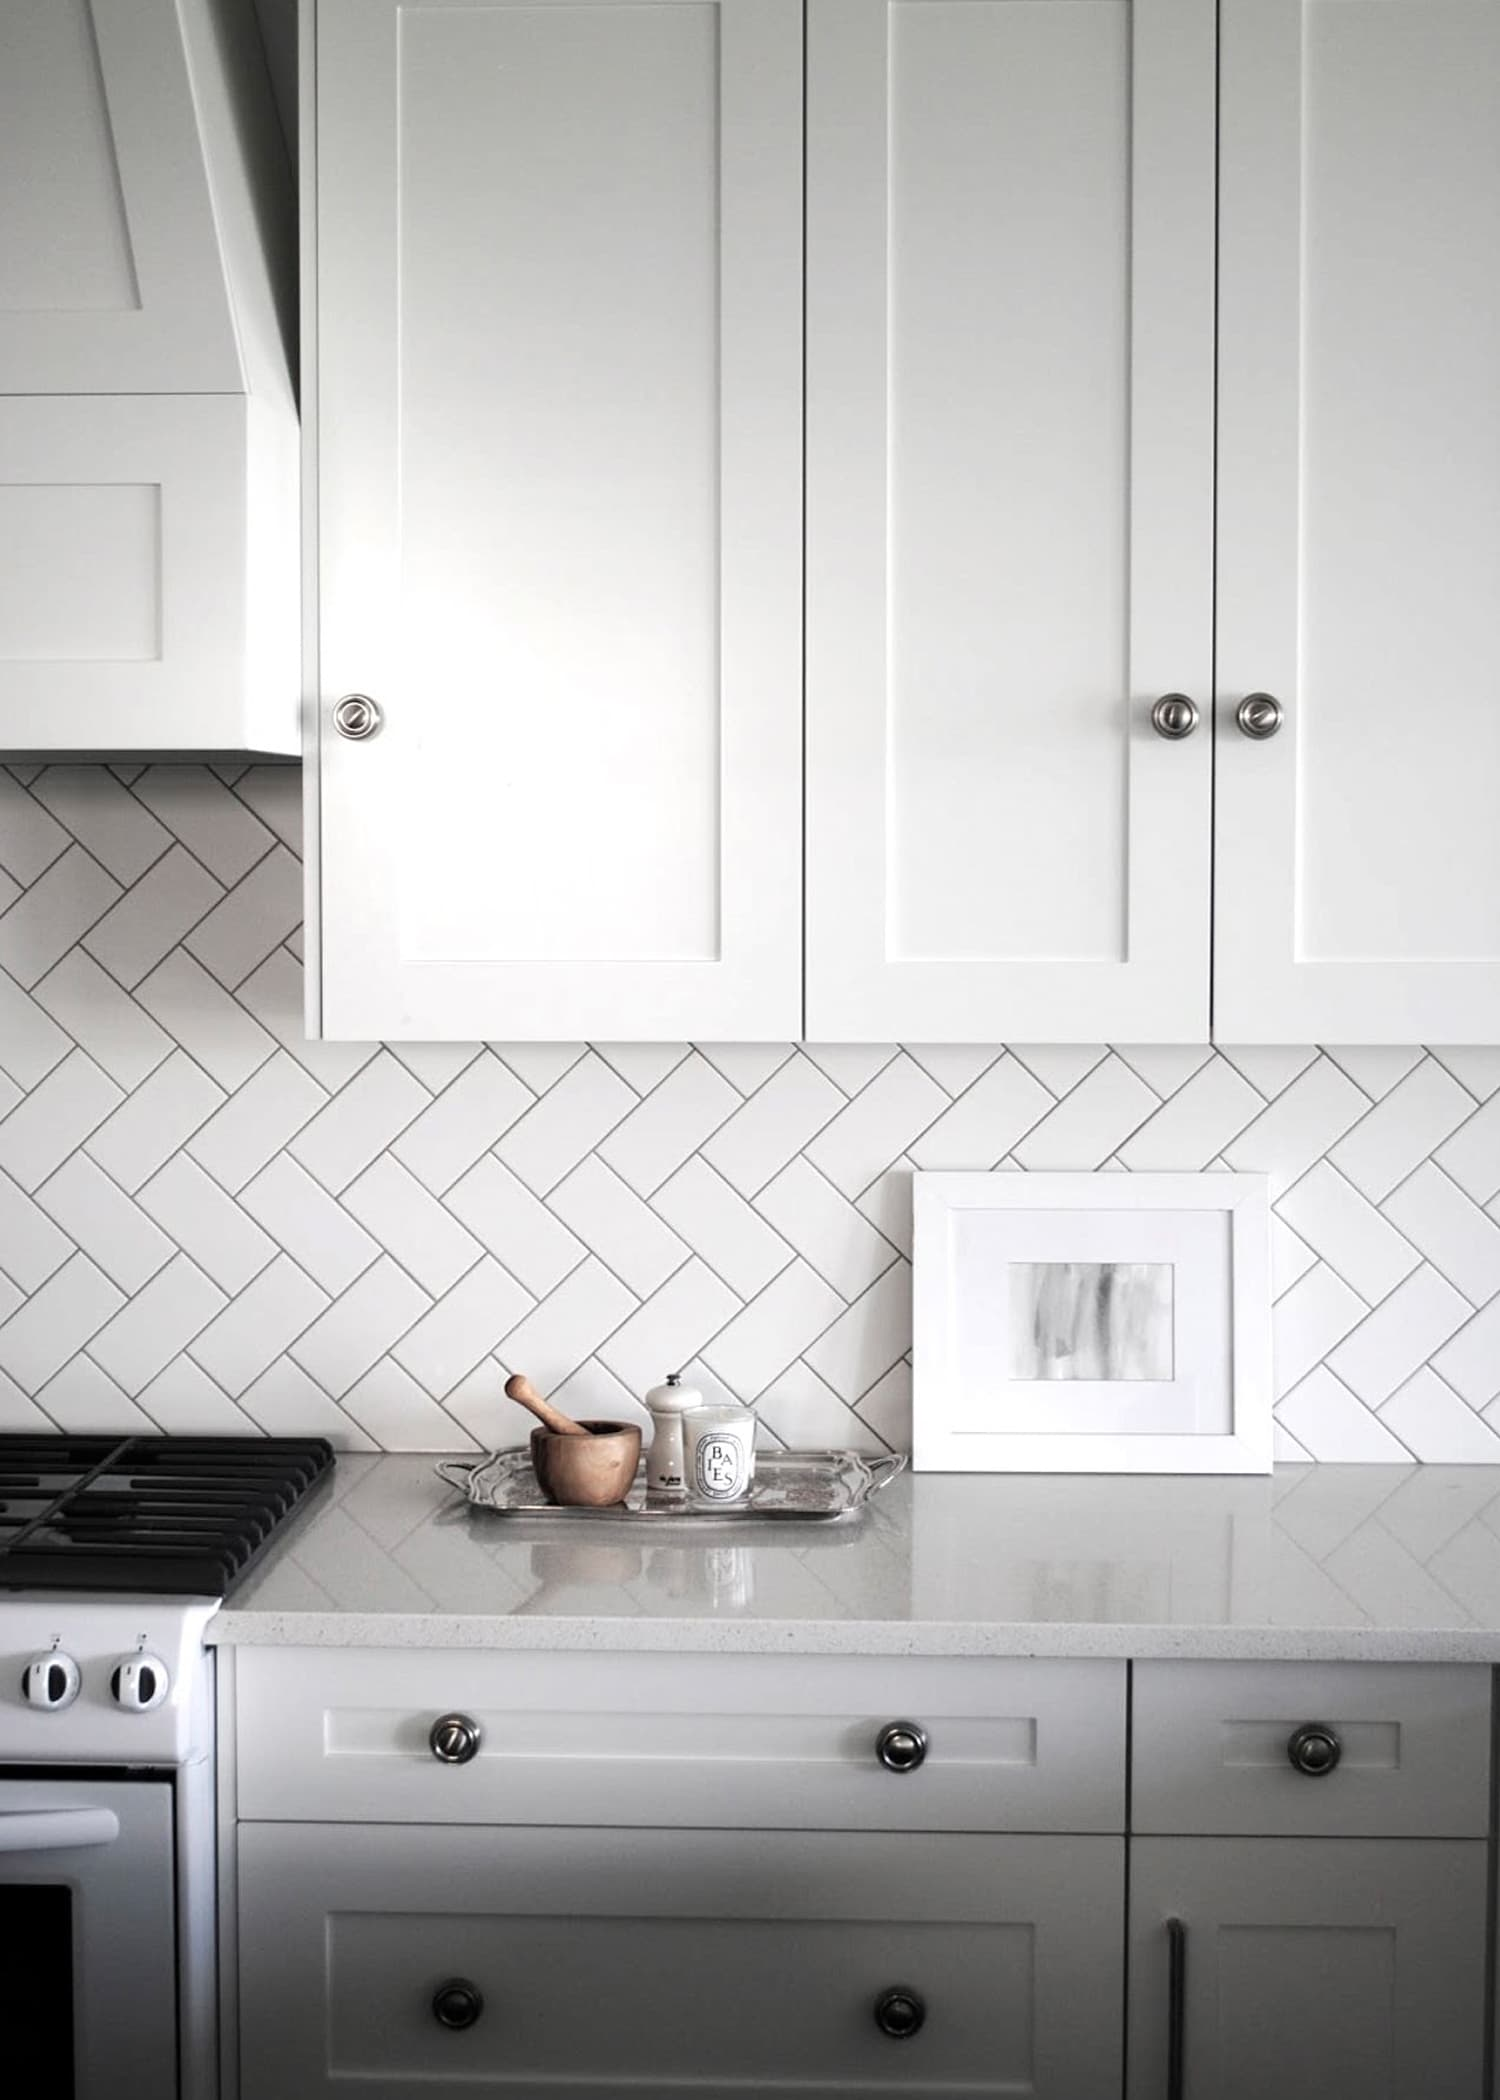 90 degree herringbone subway tile